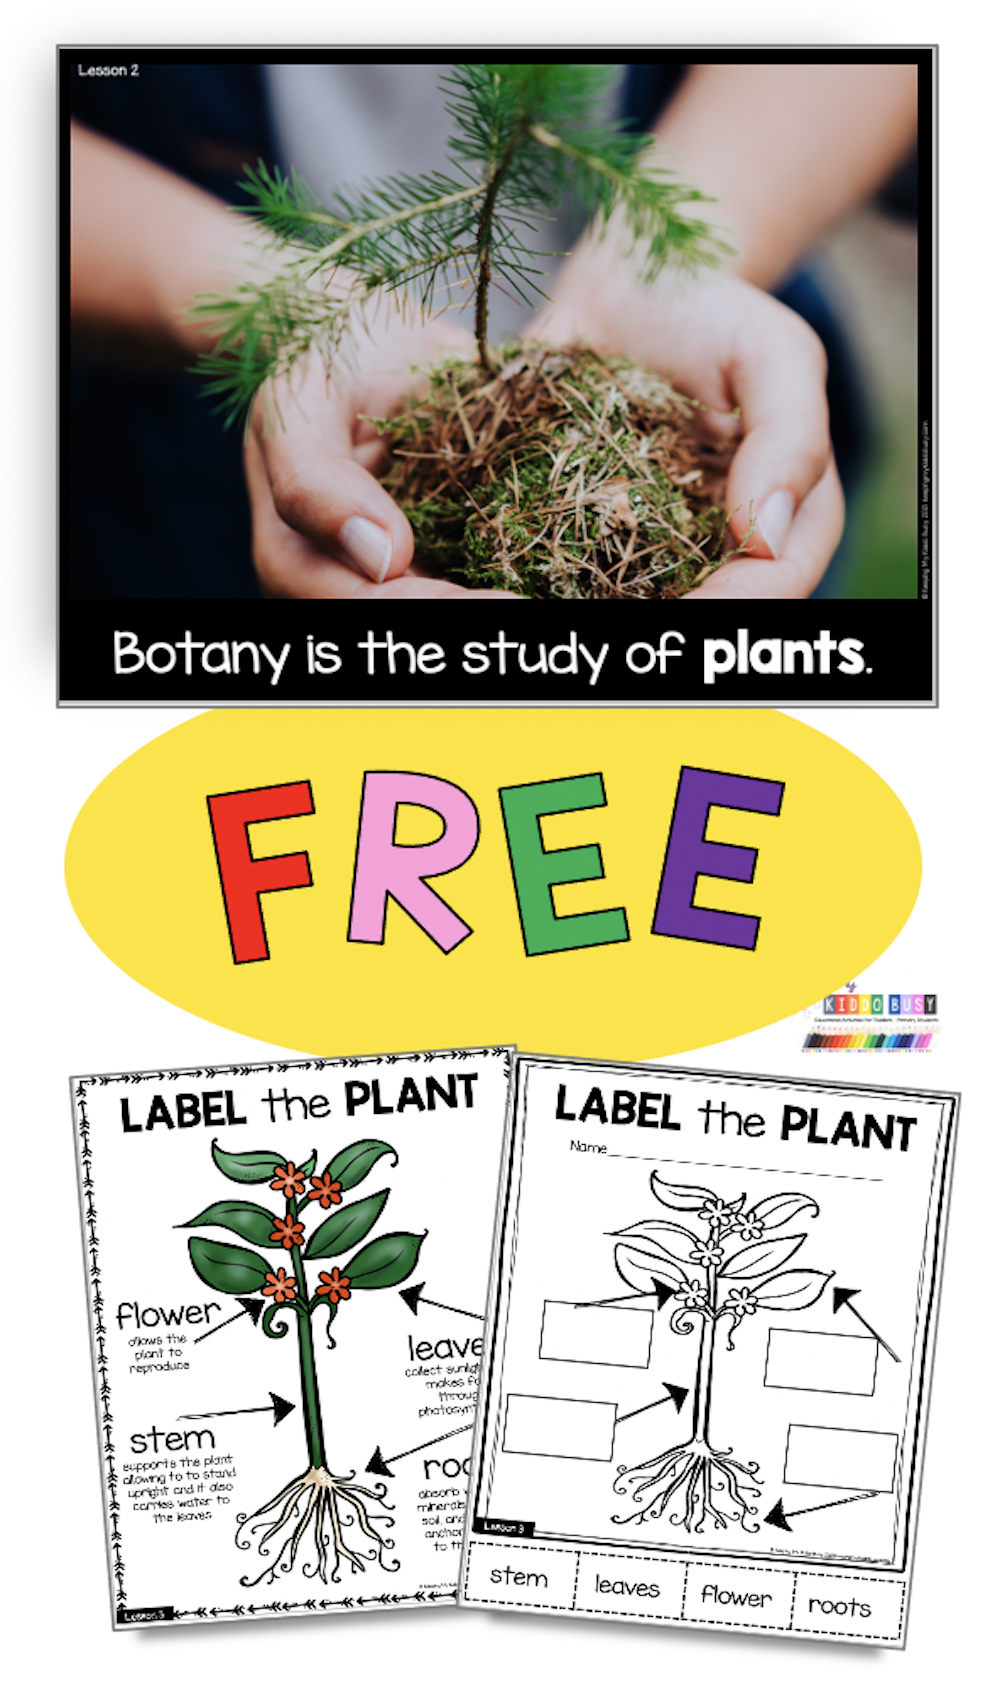 All About Plants Science Unit Free Activity Keeping My Kiddo Busy In 2021 Plant Science Plant Life Cycle Science Units [ 1700 x 1000 Pixel ]